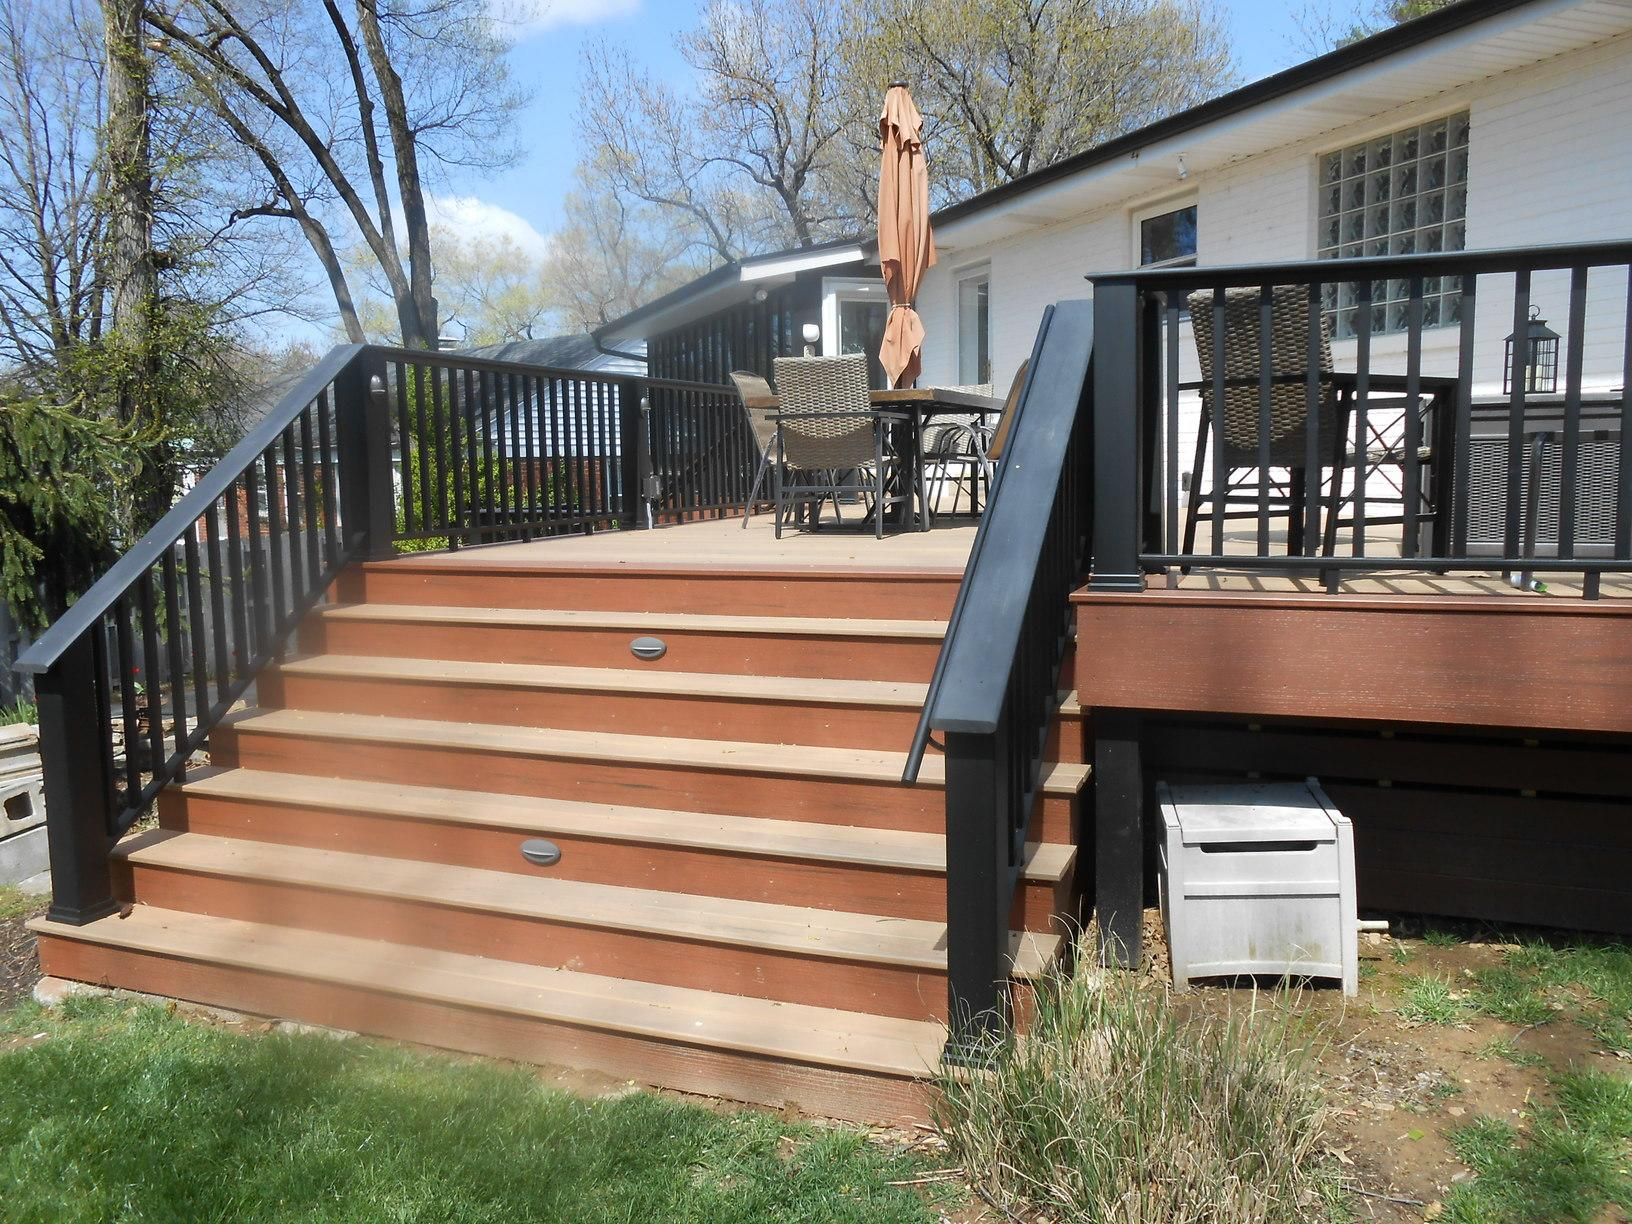 Deck Stairs Updated in Crestwood, Missouri - After Photo